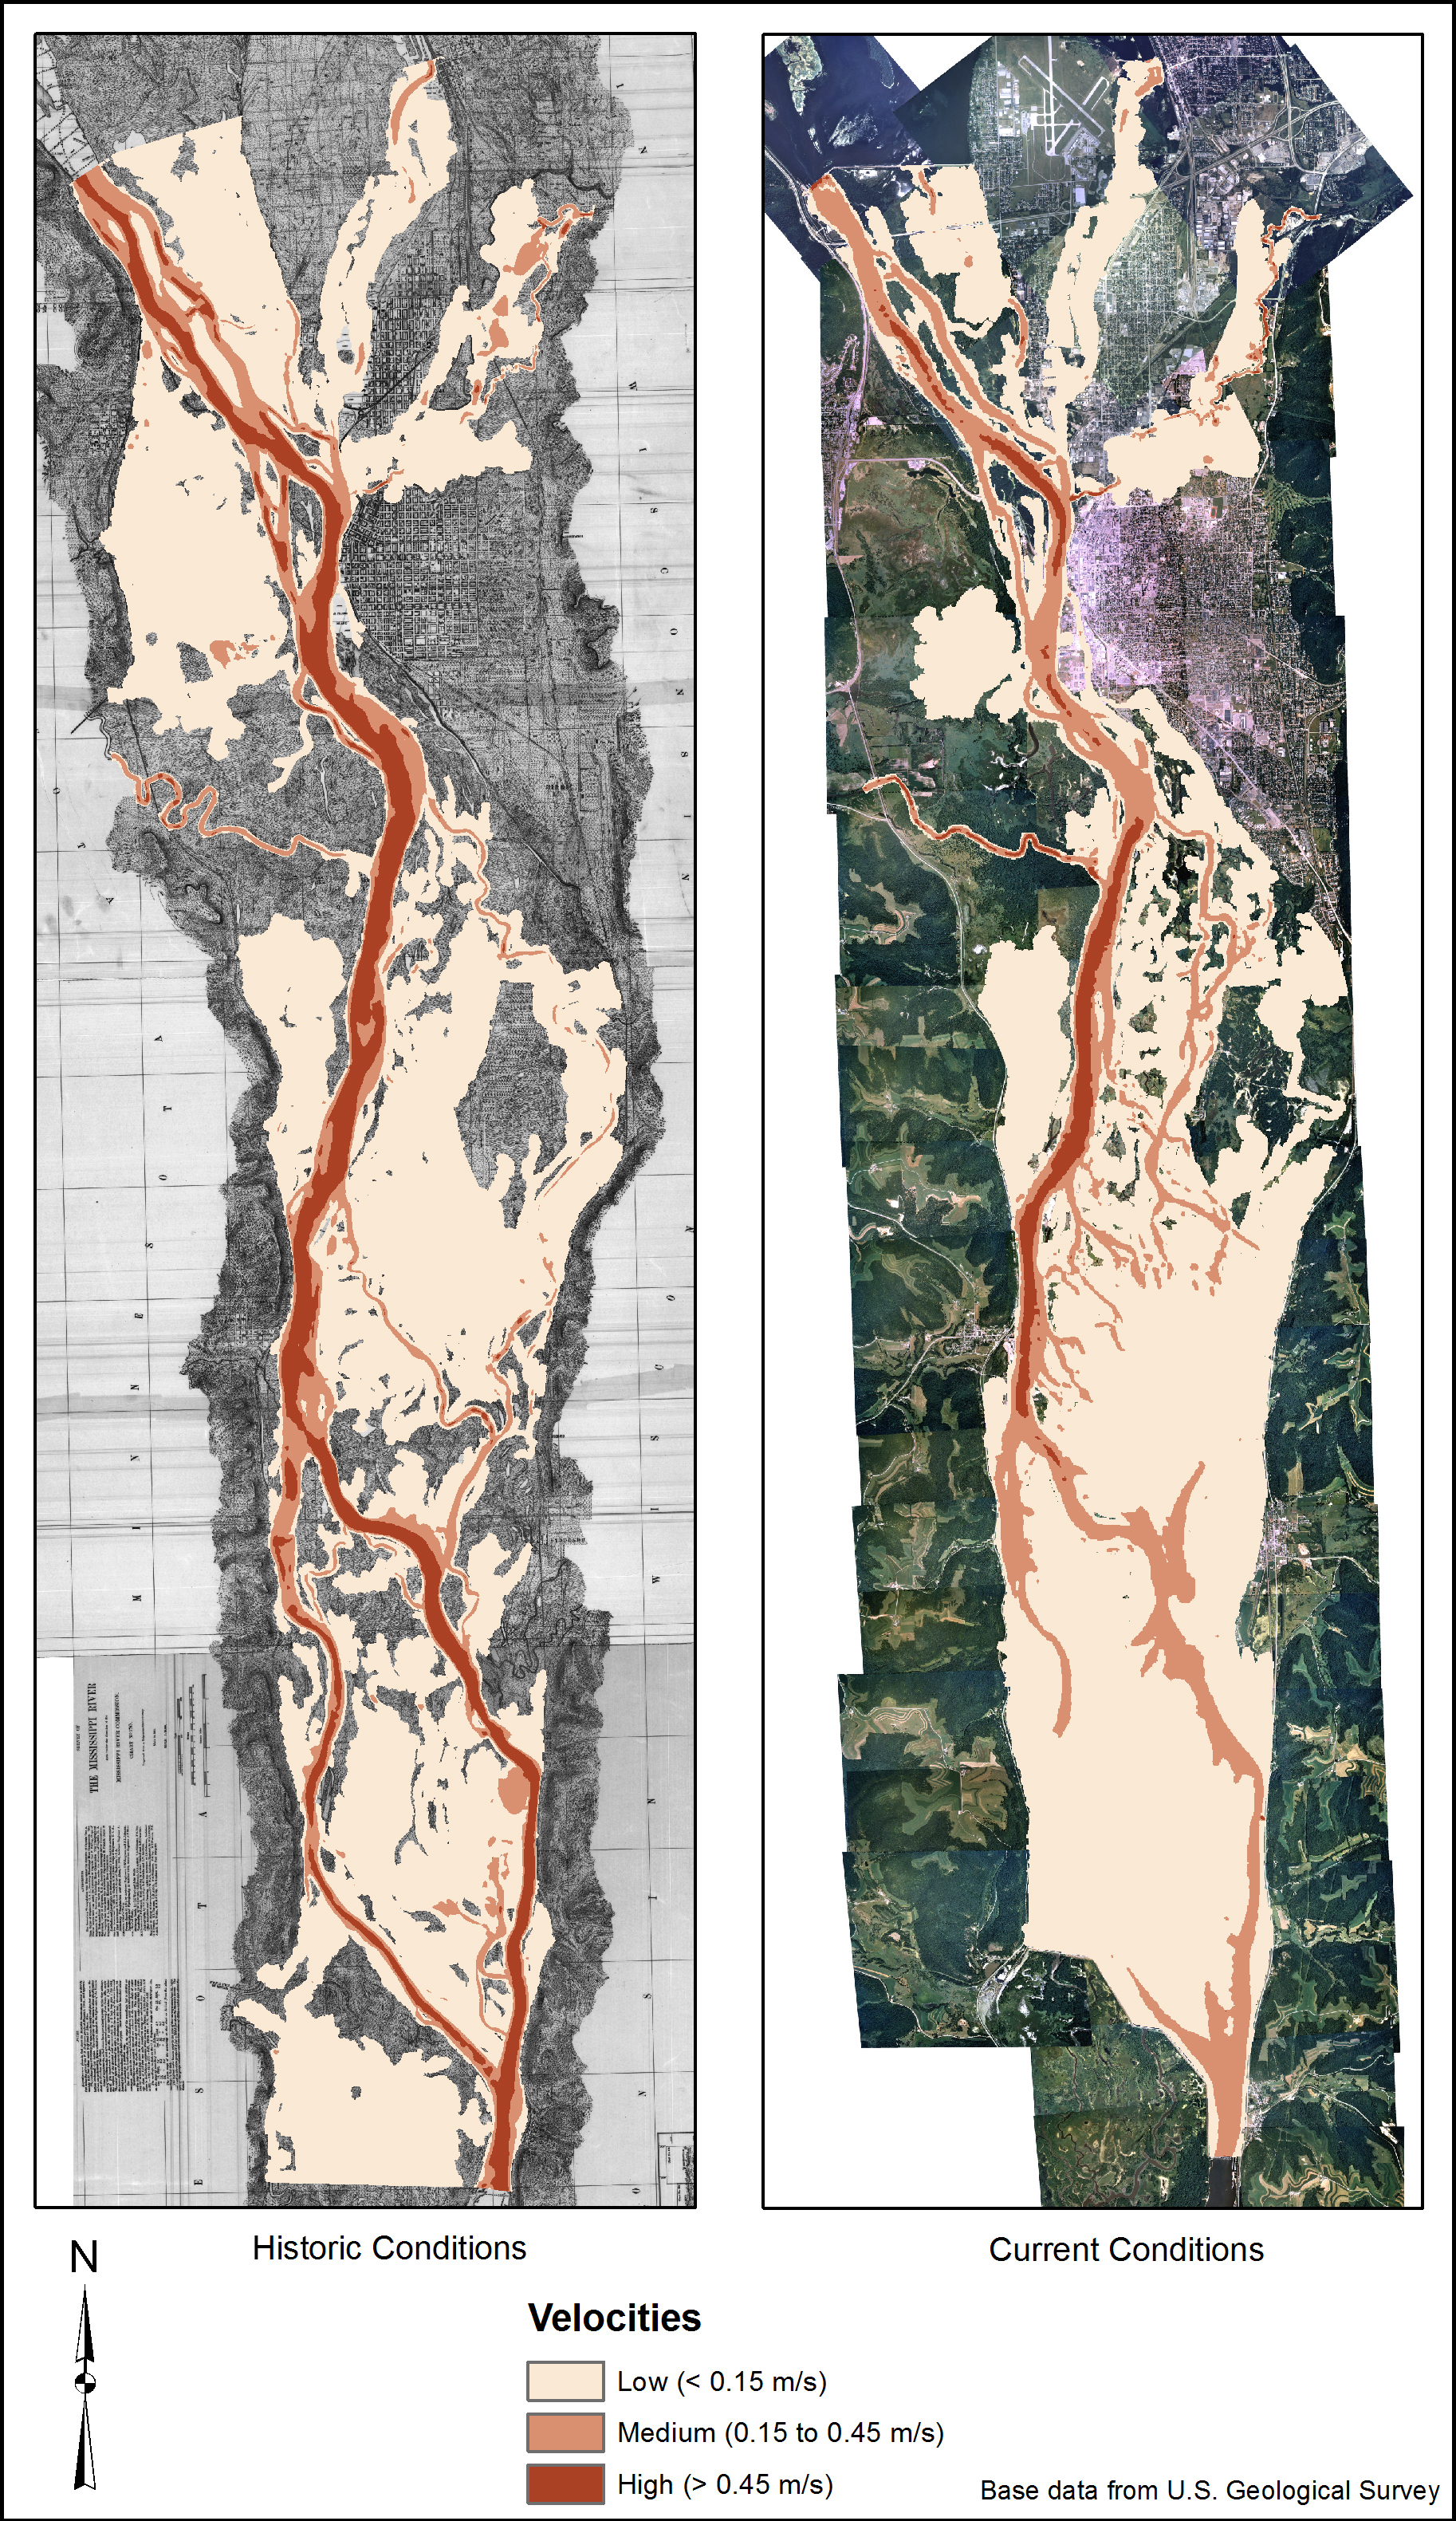 """A comparison of velocities output from the model for current and historic conditions. Near the bottom note the """"lower pool"""" area, which is the most changed by the construction of the locks and dams."""